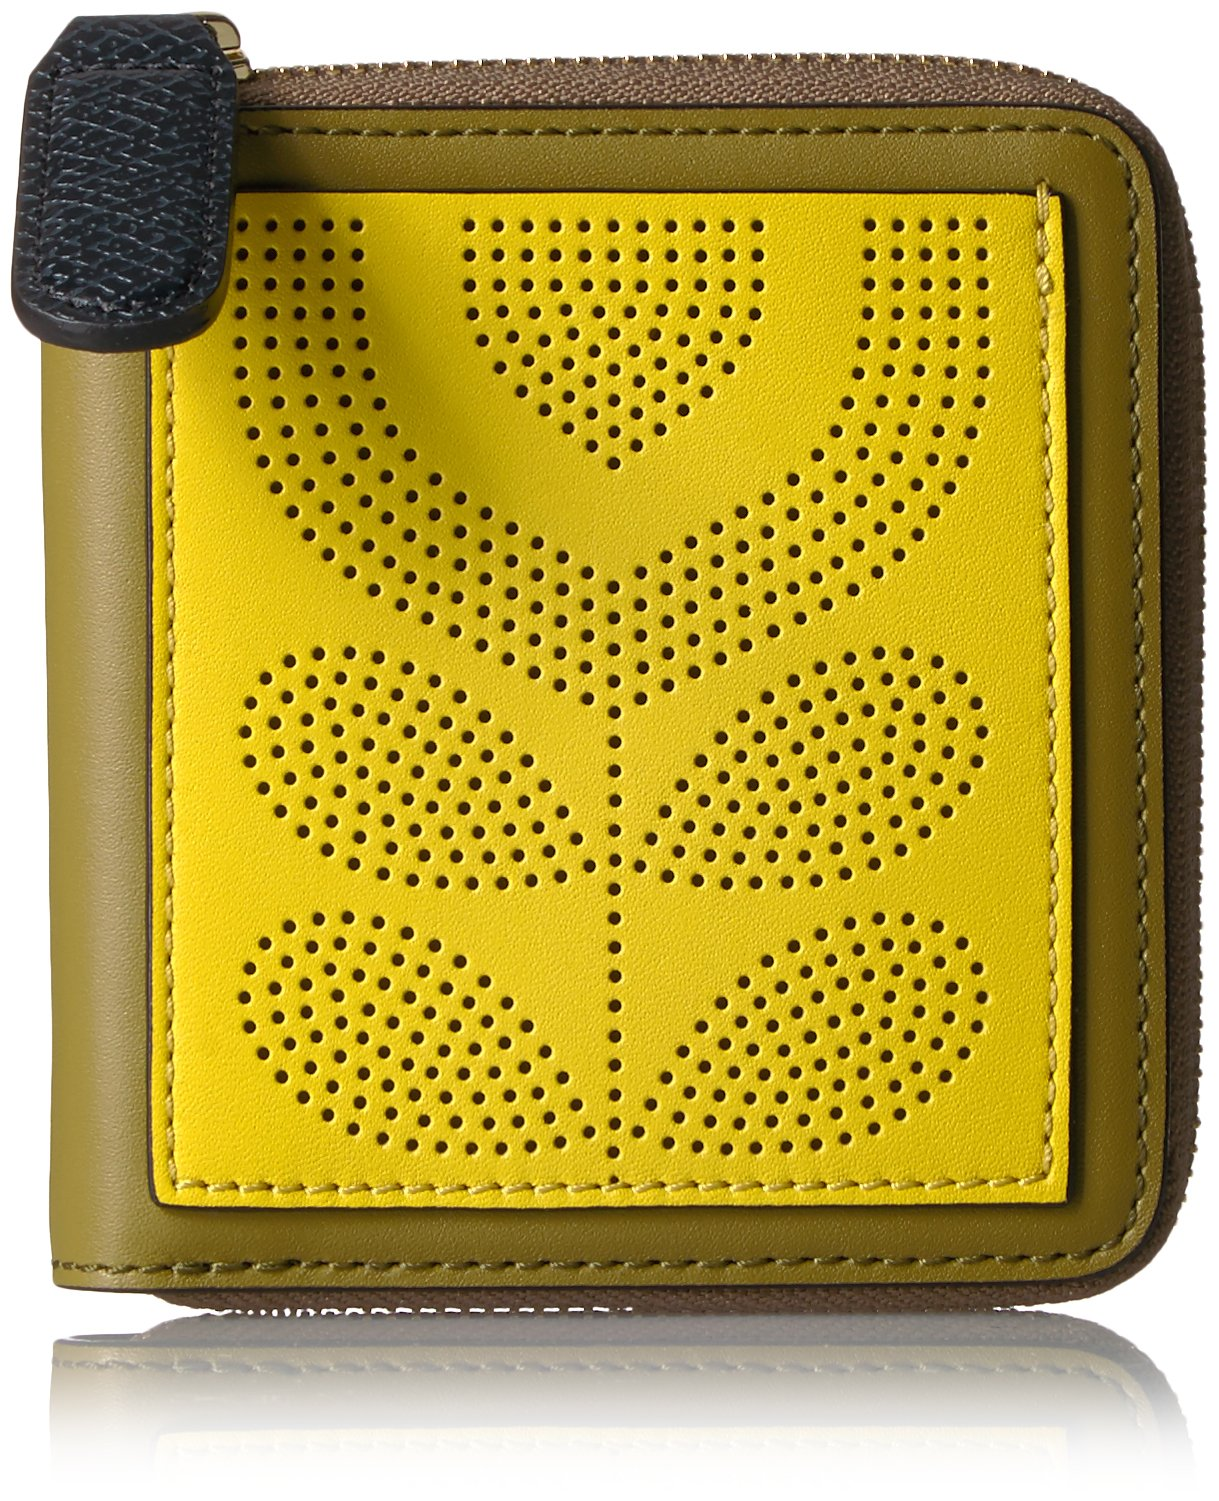 Punched Pocket Leather Square Zip Wallet Wallet, Moss, One Size